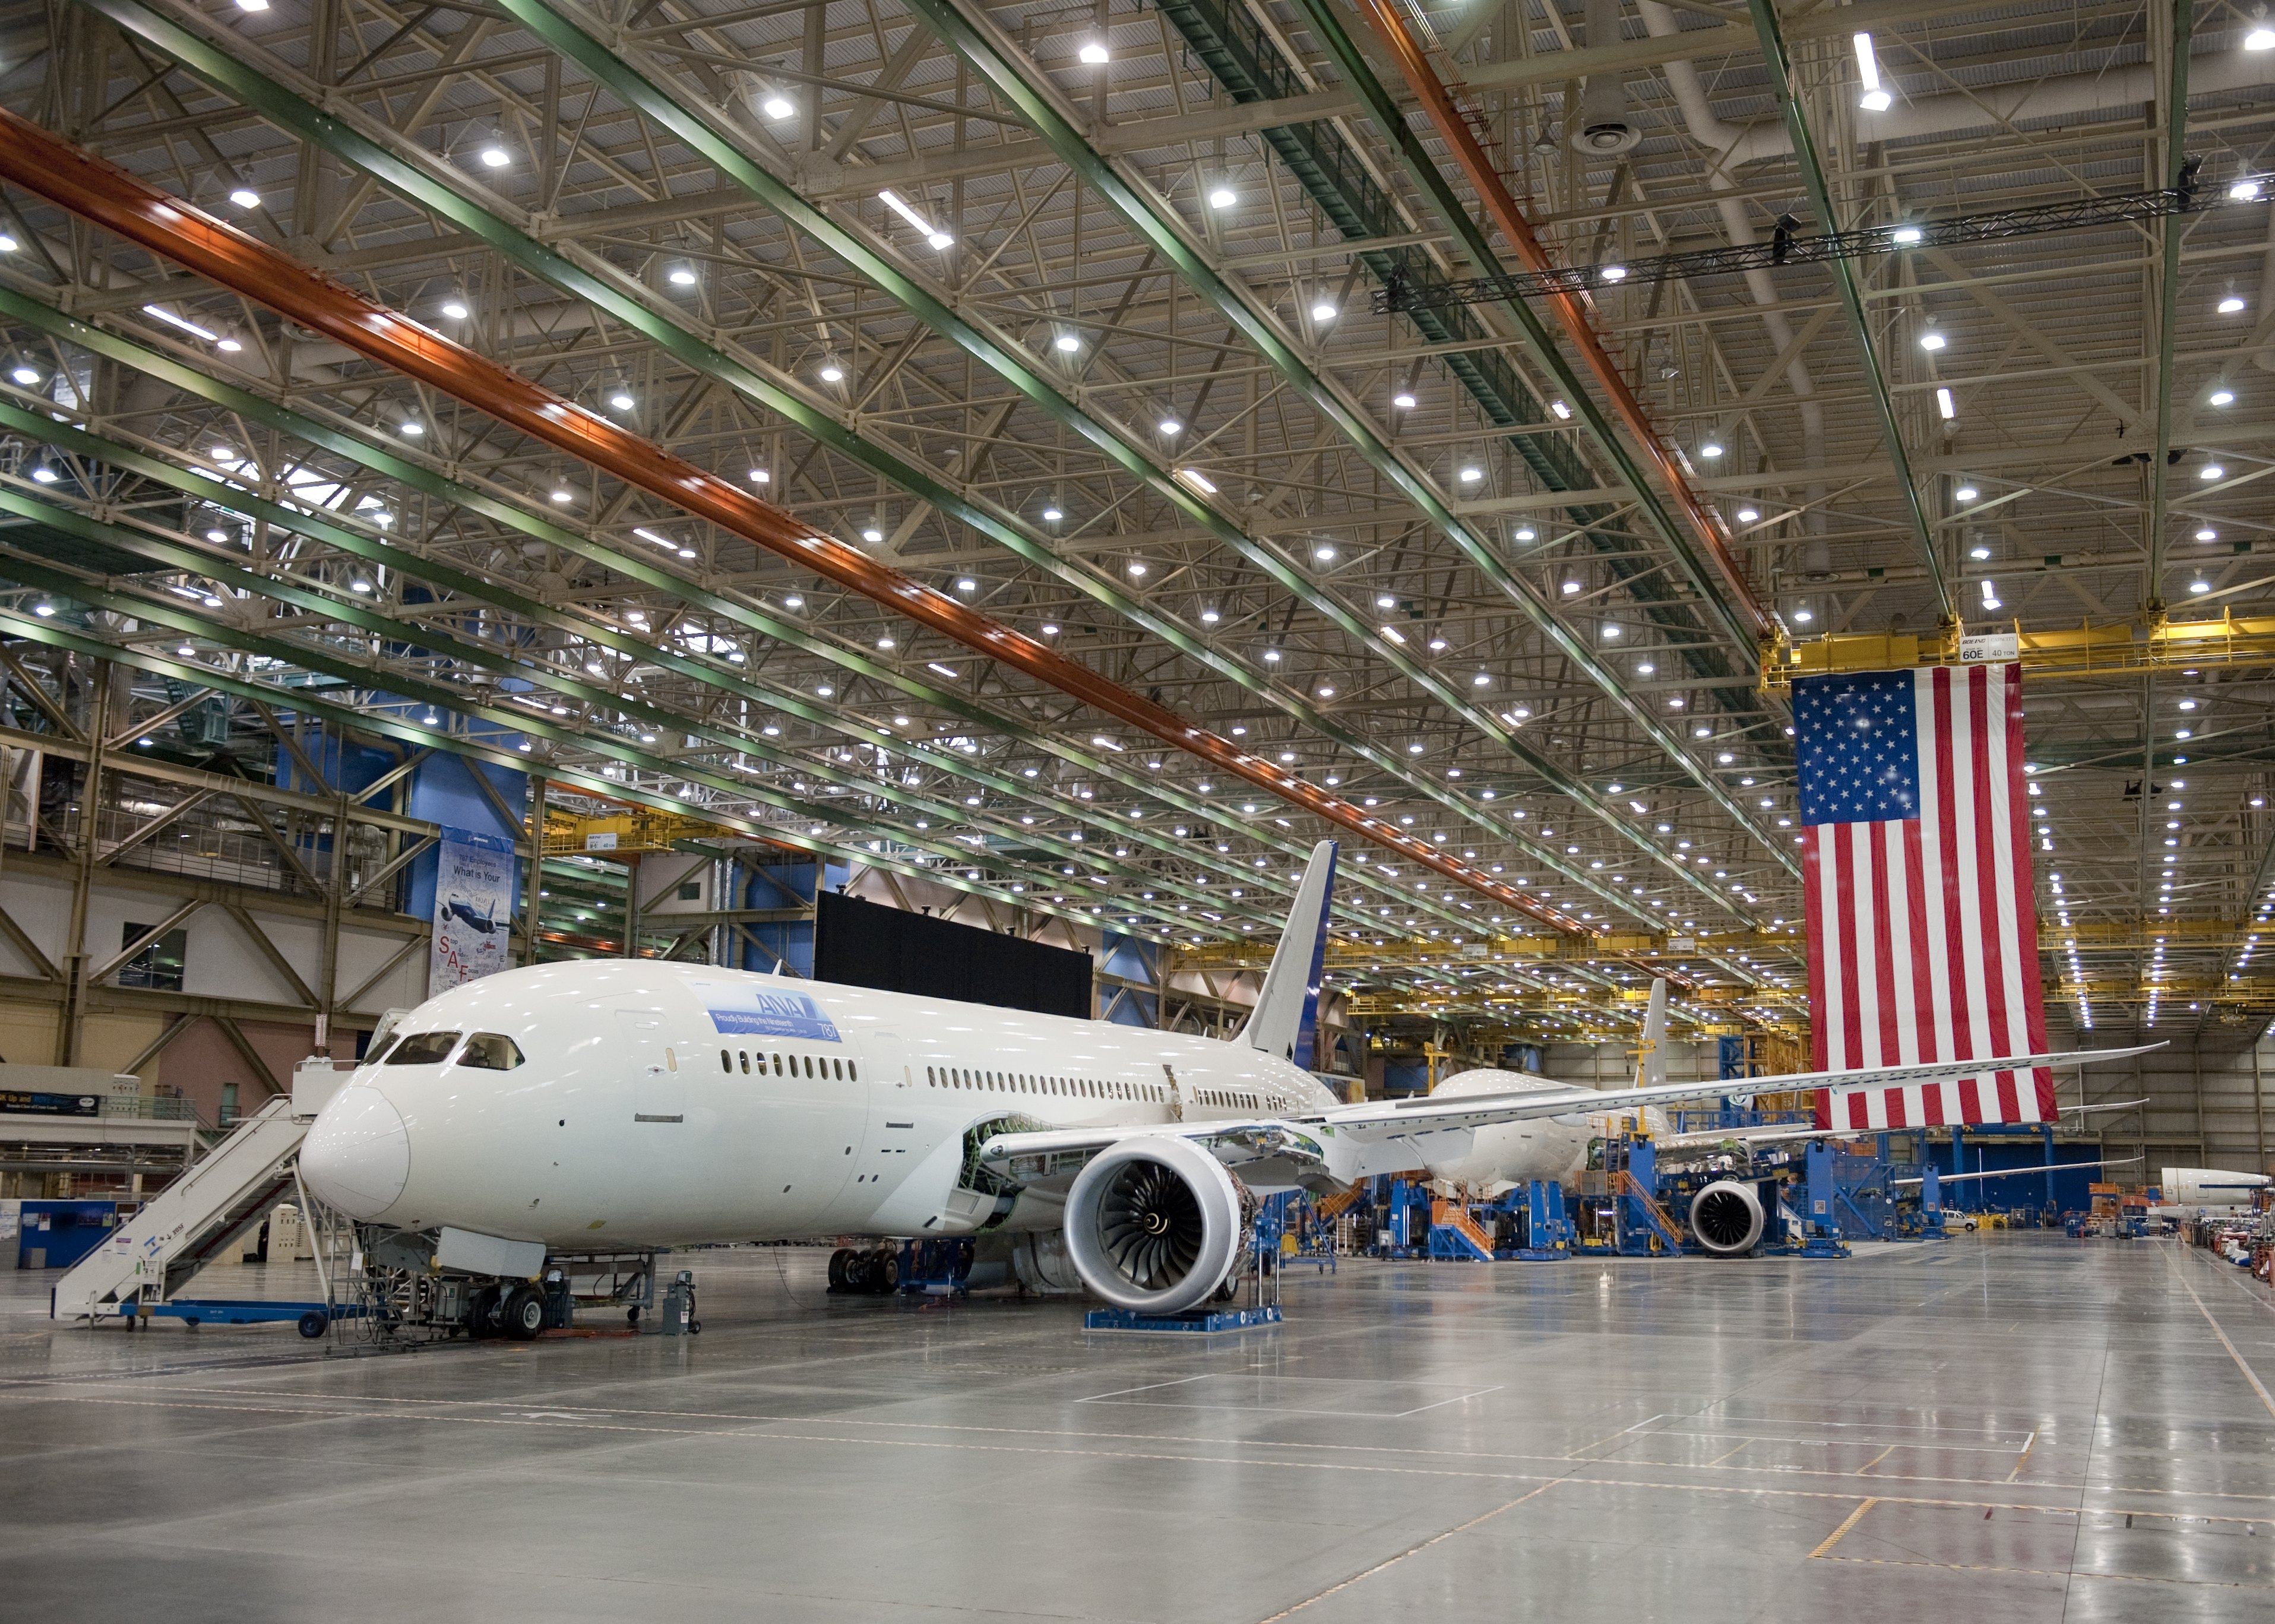 US-BUSINESS-BOEING-AVIATION